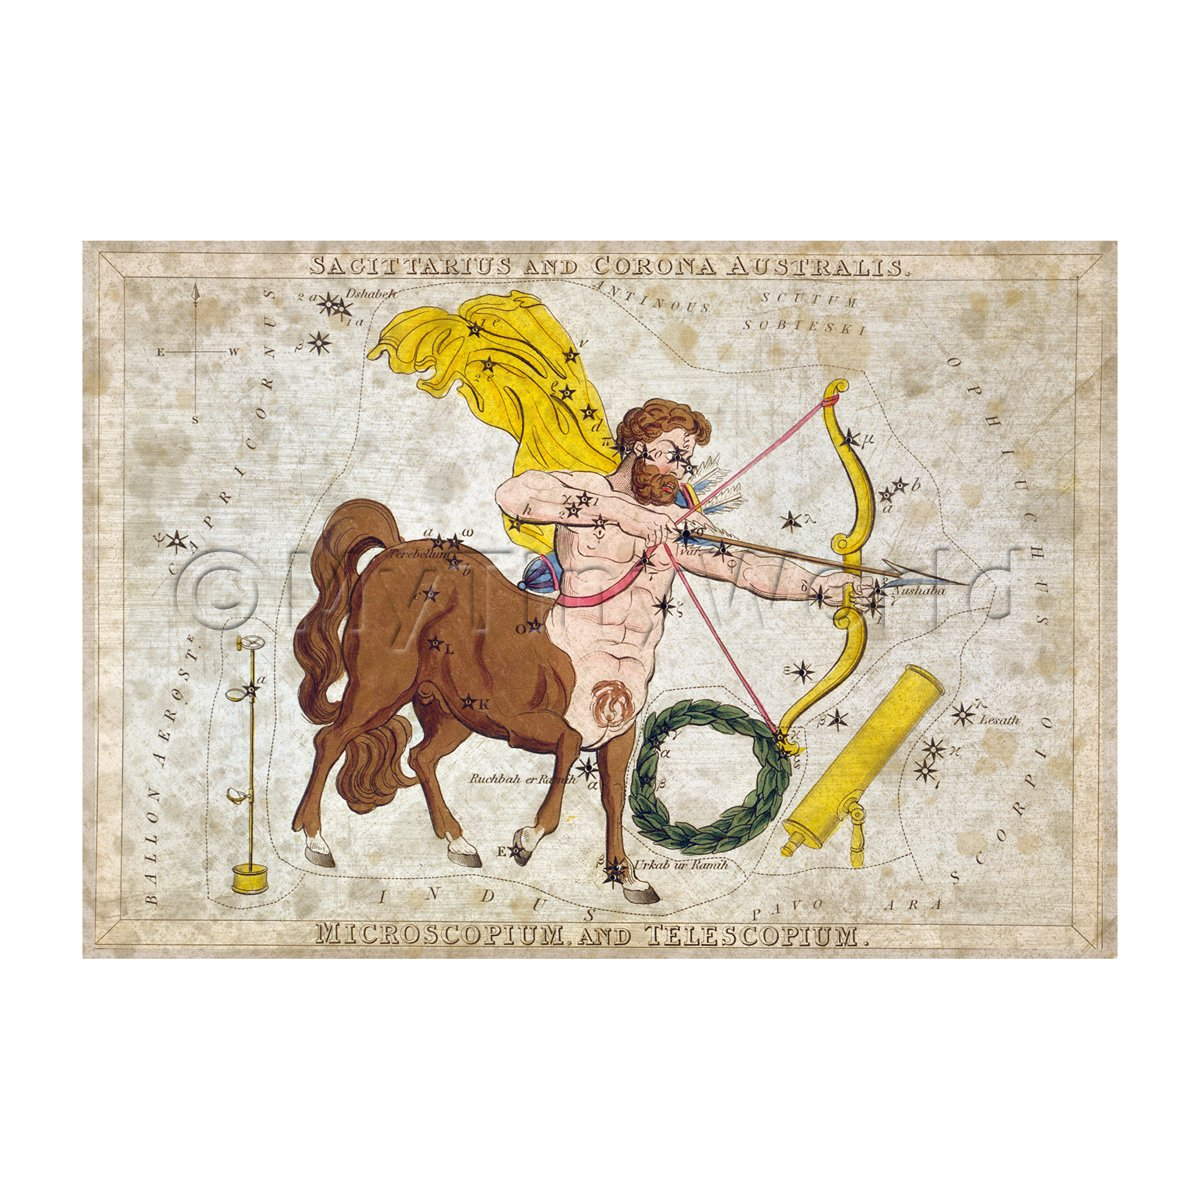 Dolls House Miniature Aged 1820s Star Map Depicting Sagittarius